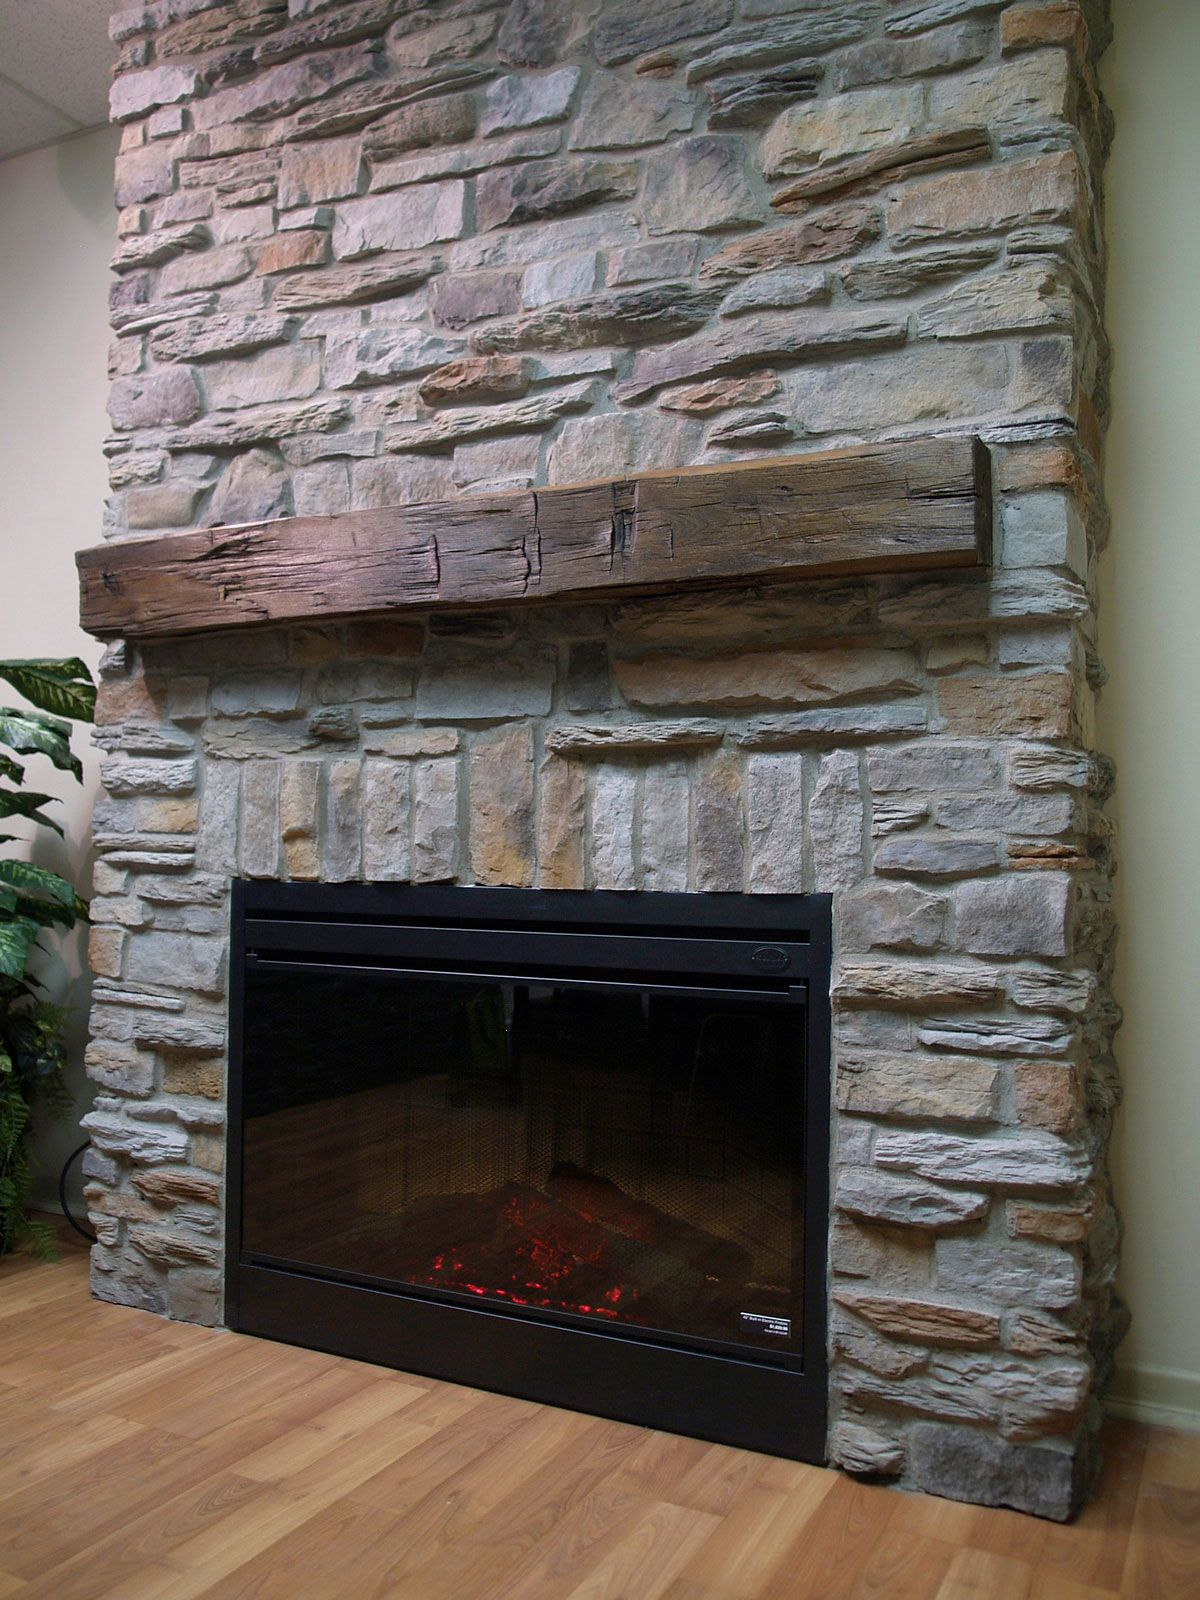 Fire Stones For Fireplace Faux Fireplace With A Stone Wall For Inside The Lodge Can We Get